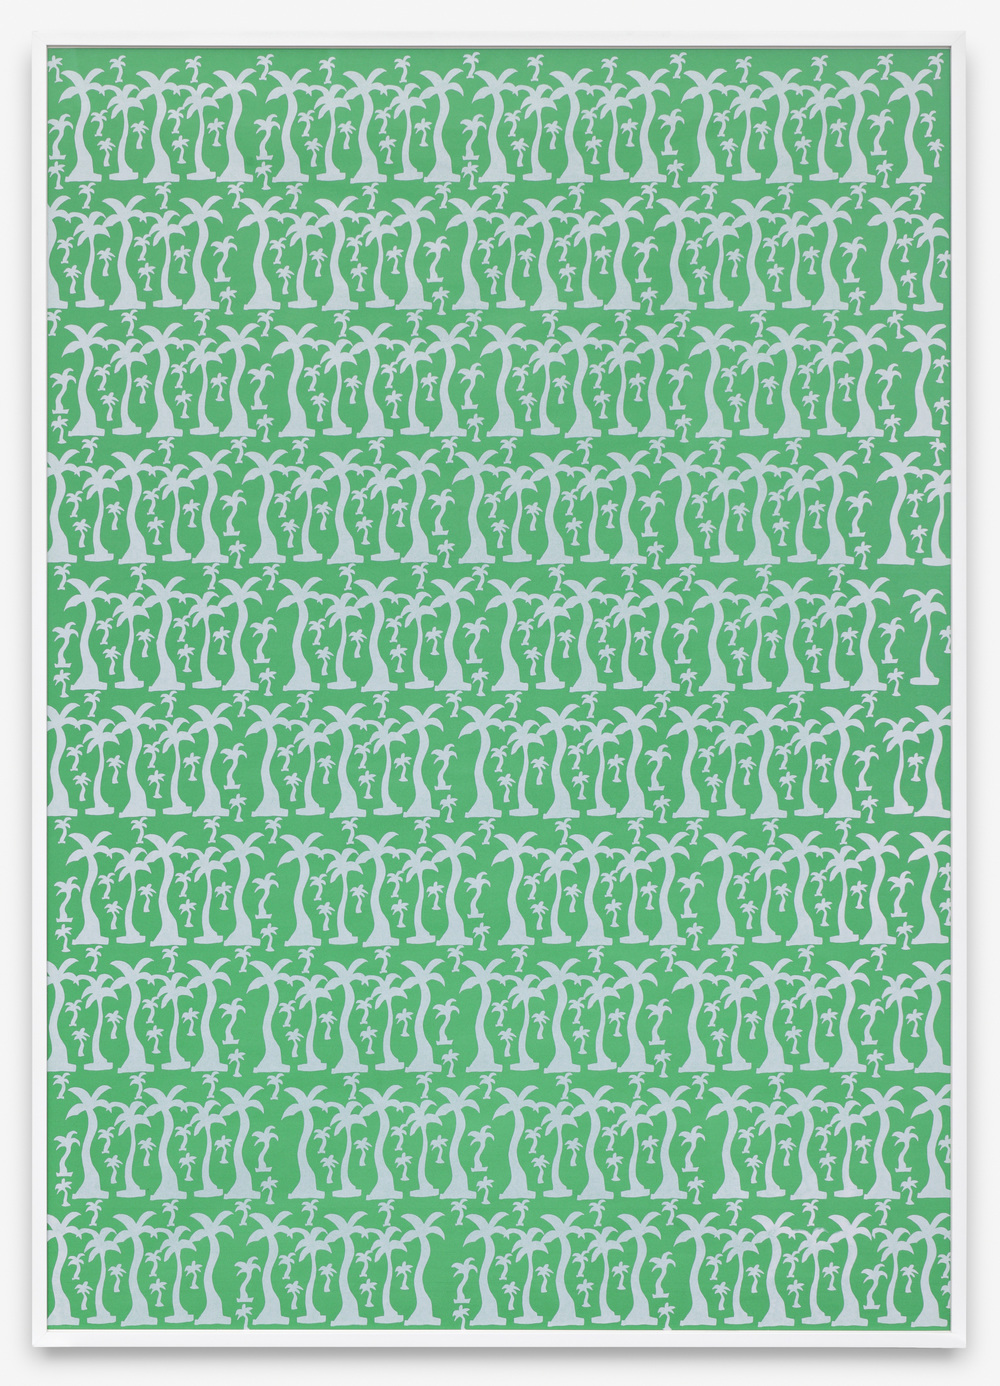 Friedrich Kuhn Untitled 1968/9 Screenprint 120 x 90 cm / 47.2 x 35.4 in, framed